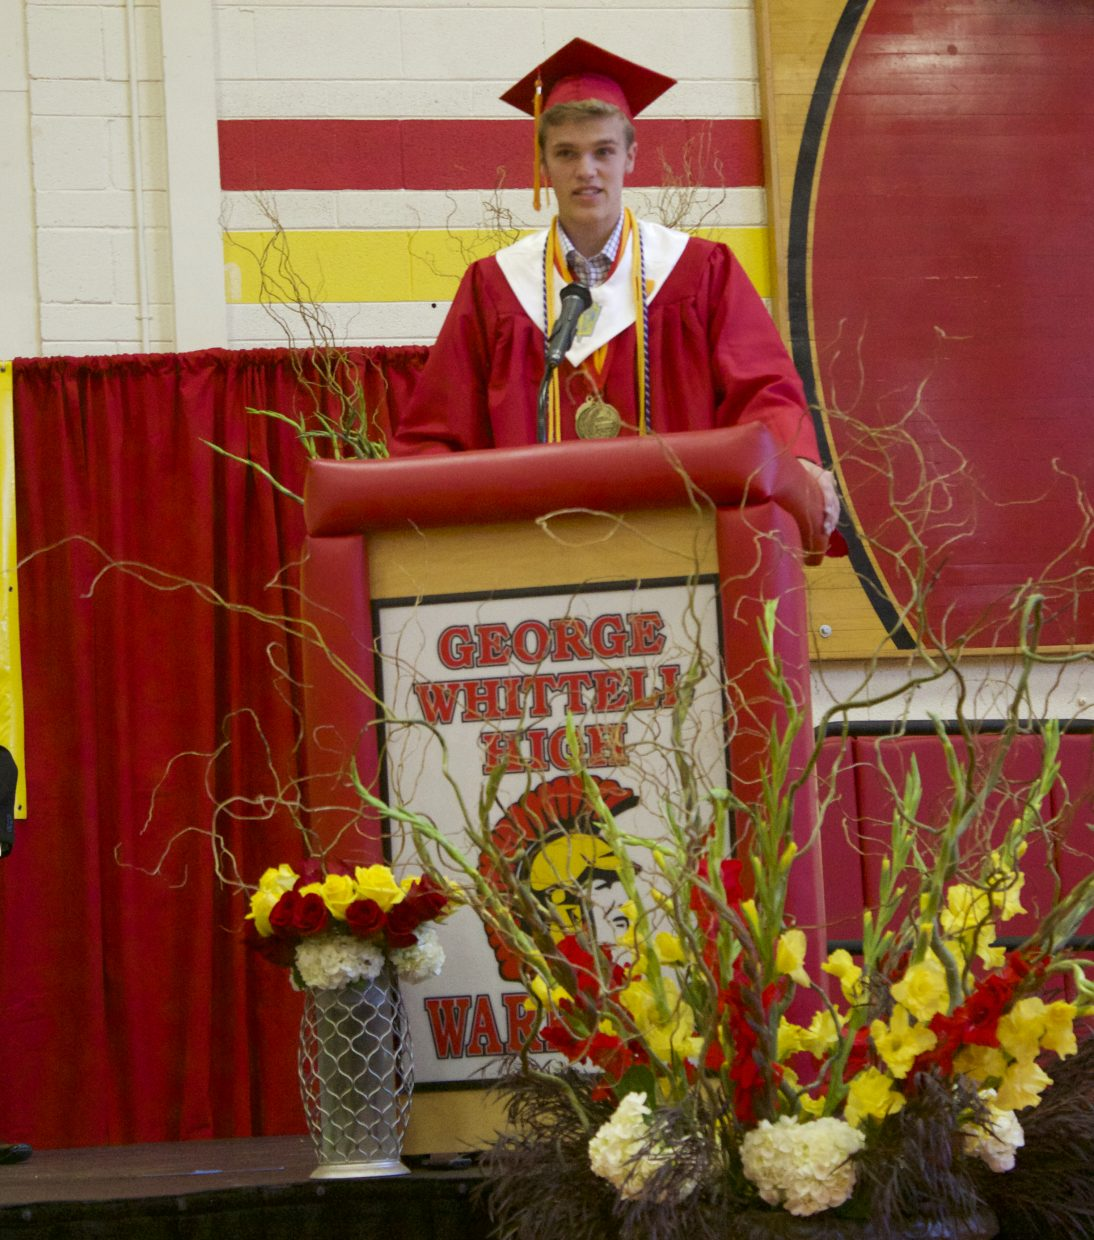 Valedictorian Scott Harrison reminded his classmates of the value of hard work.